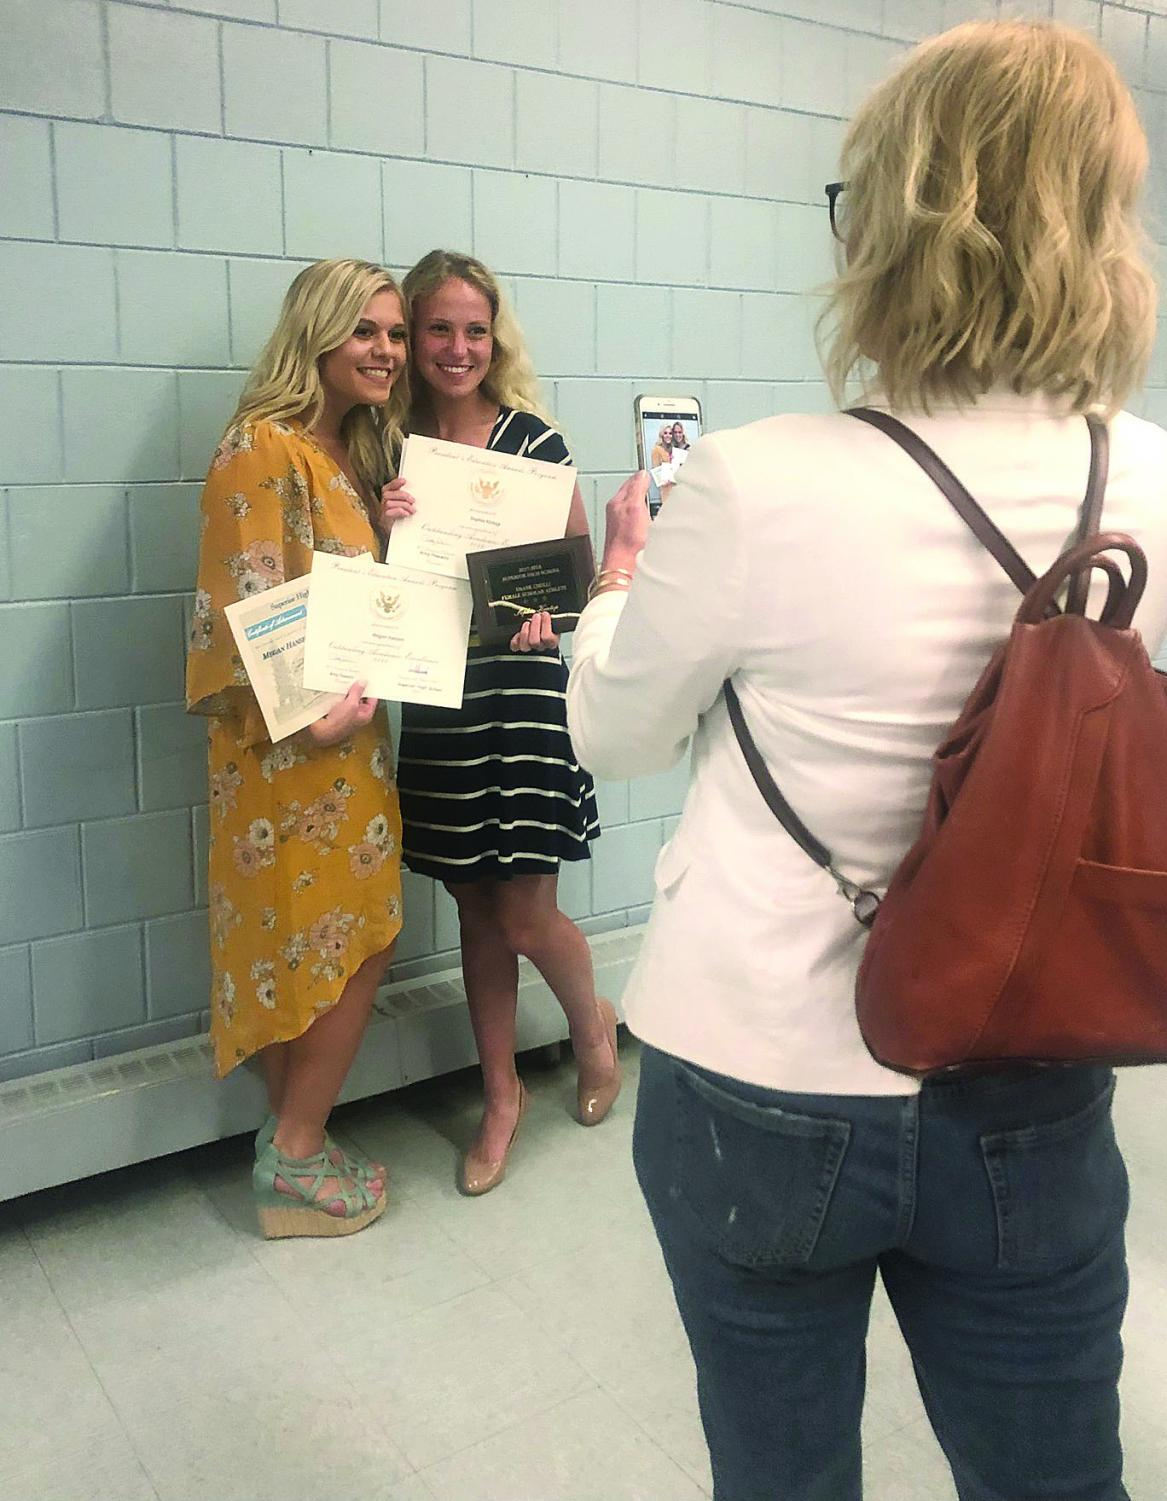 Seniors Sophie Kintop and Megan Hanson pose for a photo after Honors Night on Wednesday, May 30.